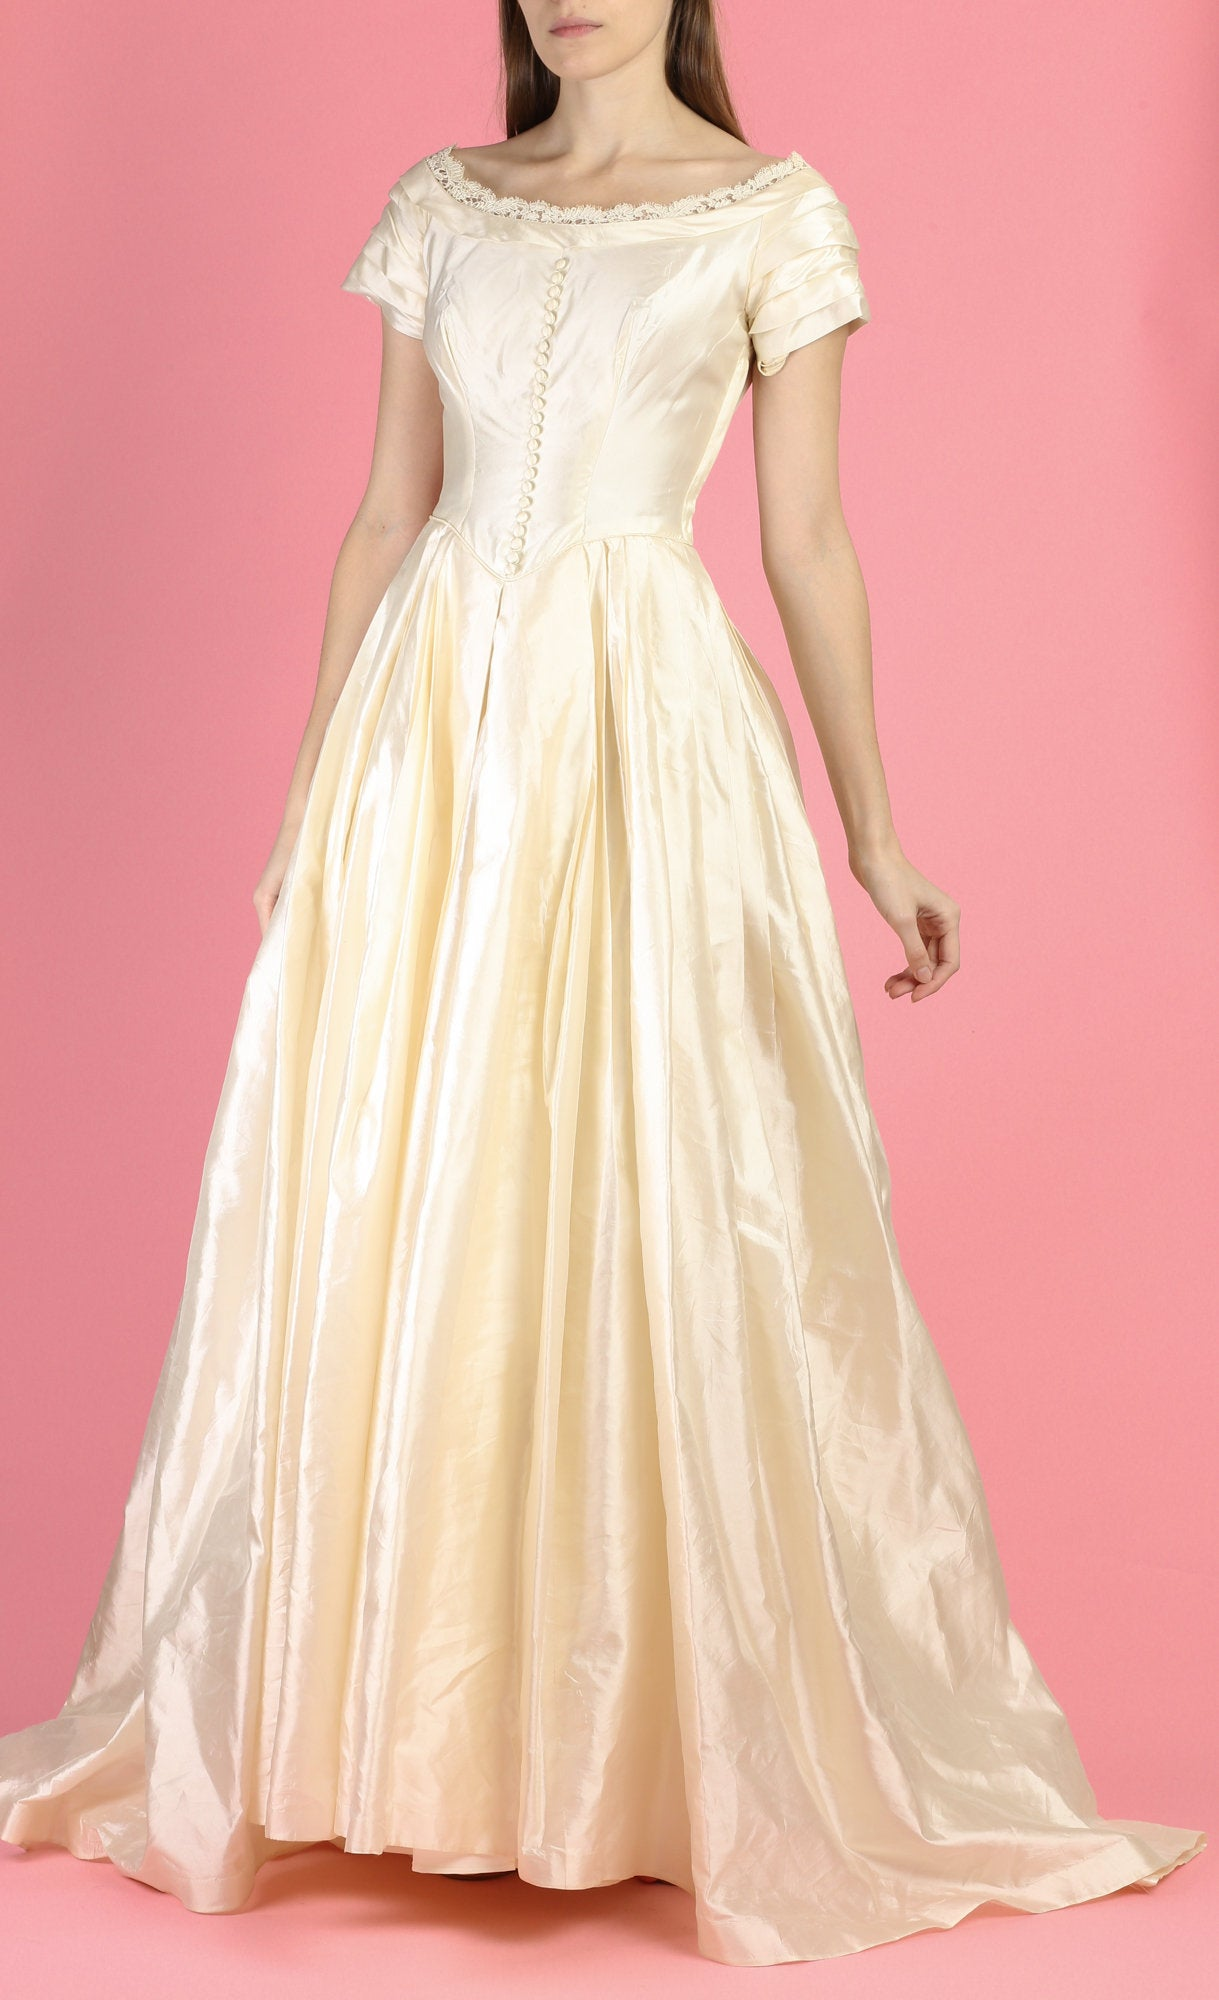 Vintage 1950s Ivory Wedding Dress - Petite Extra Small